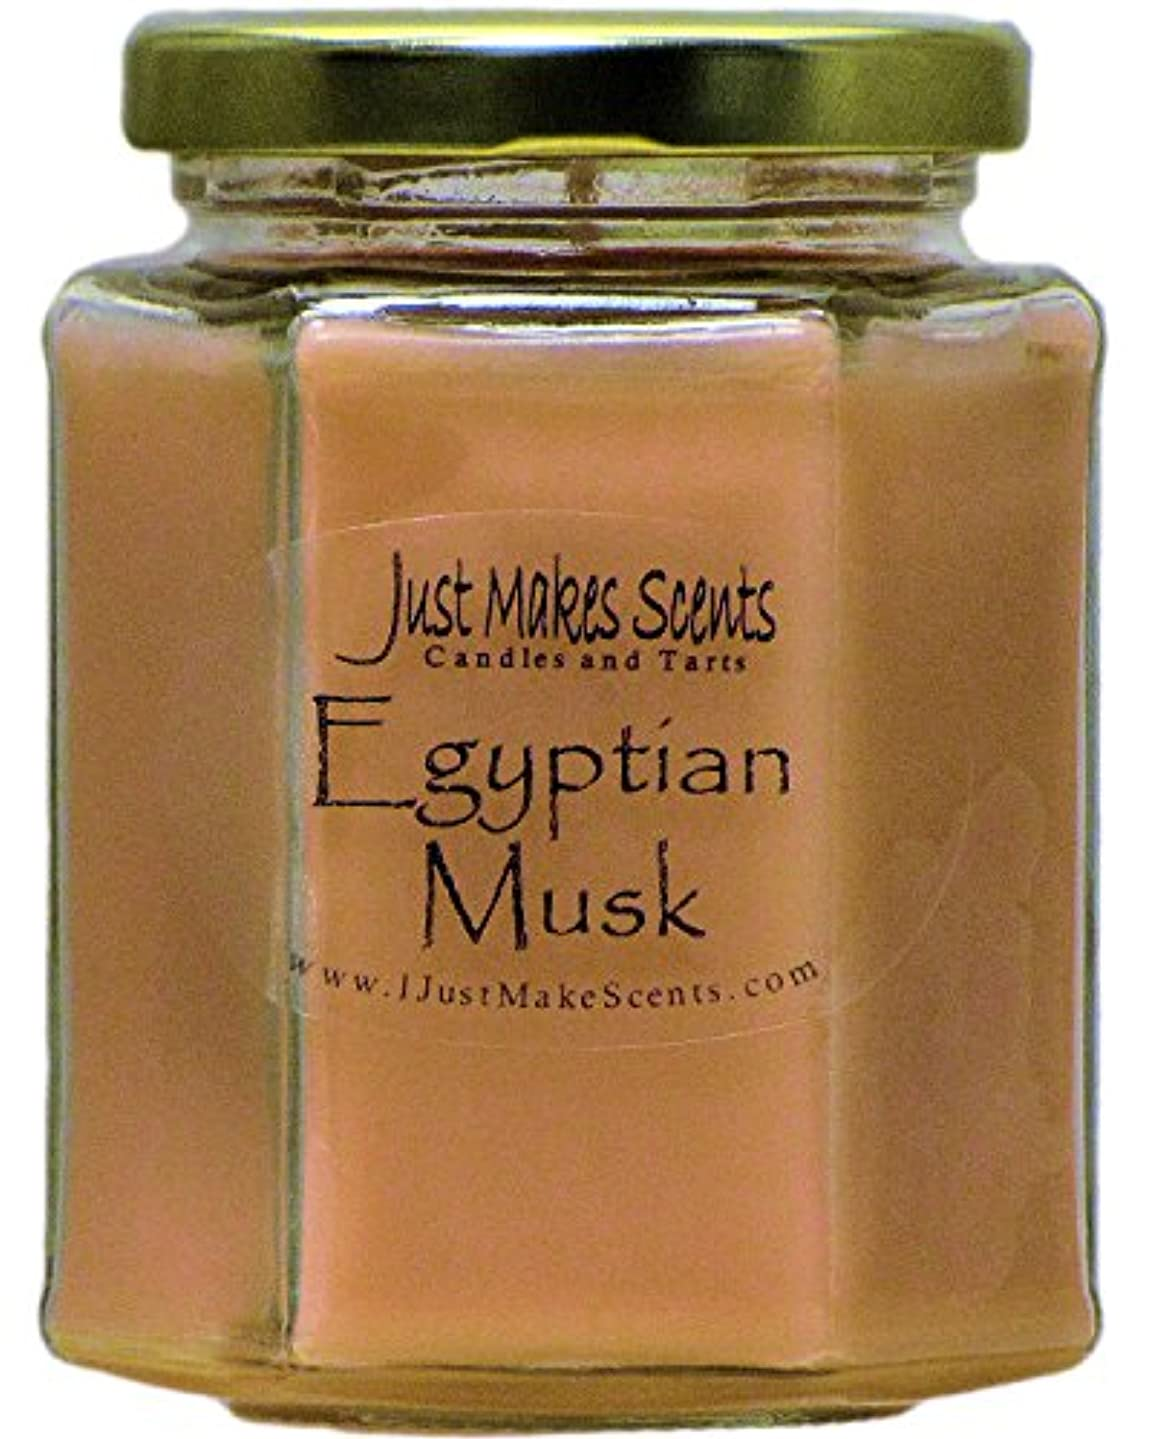 苗化粧ハイブリッドEgyptian Musk Scented Blended大豆キャンドルby Just Makes Scents8オンス。。。 1 Candle C03809HCNL